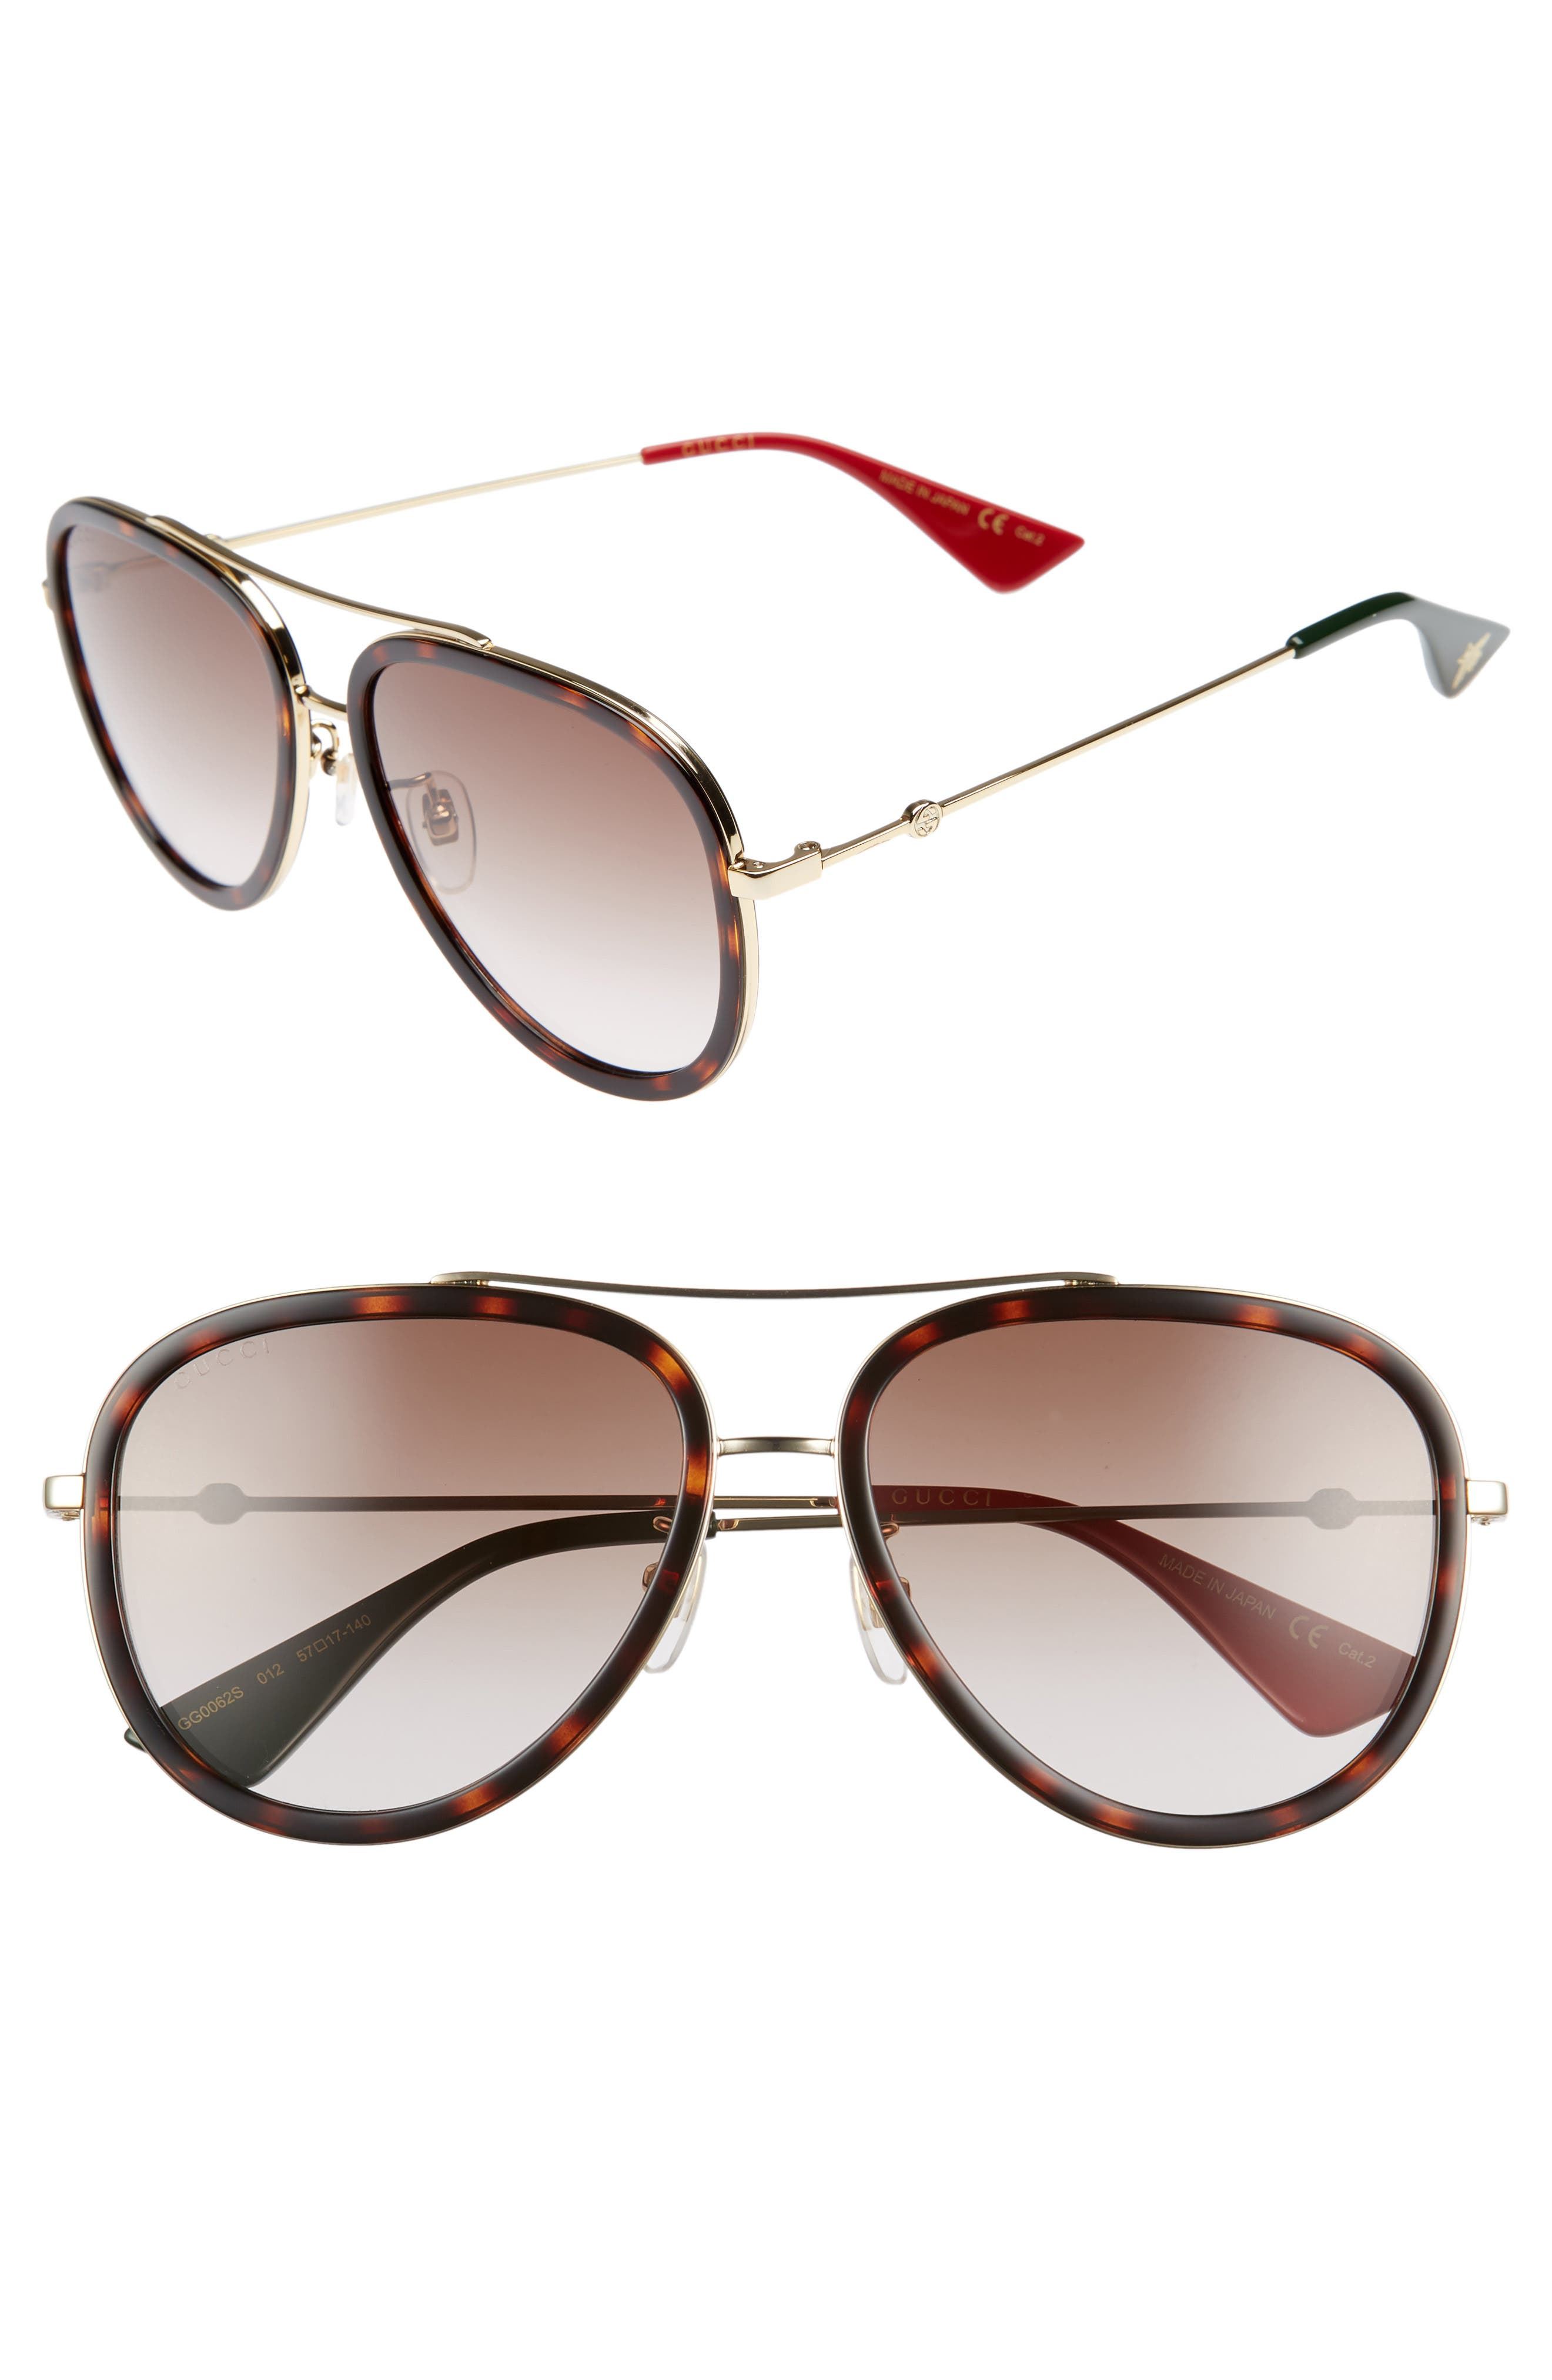 57mm Aviator Sunglasses,                         Main,                         color, GOLD/ RED/ GREEN